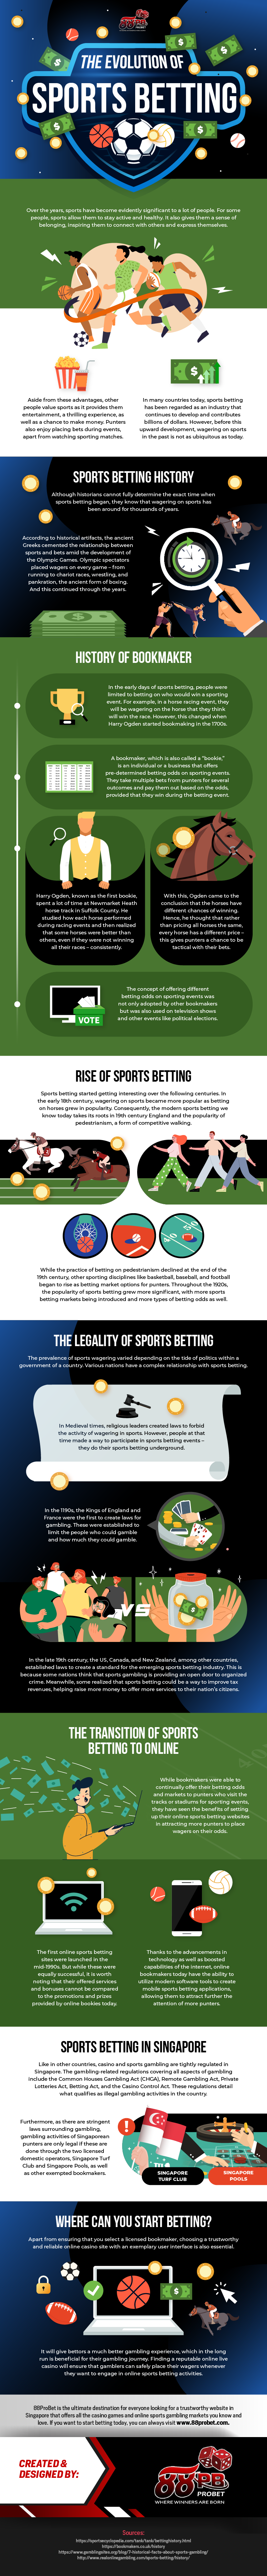 The-Evolution-of-Sports-Betting-Infographic